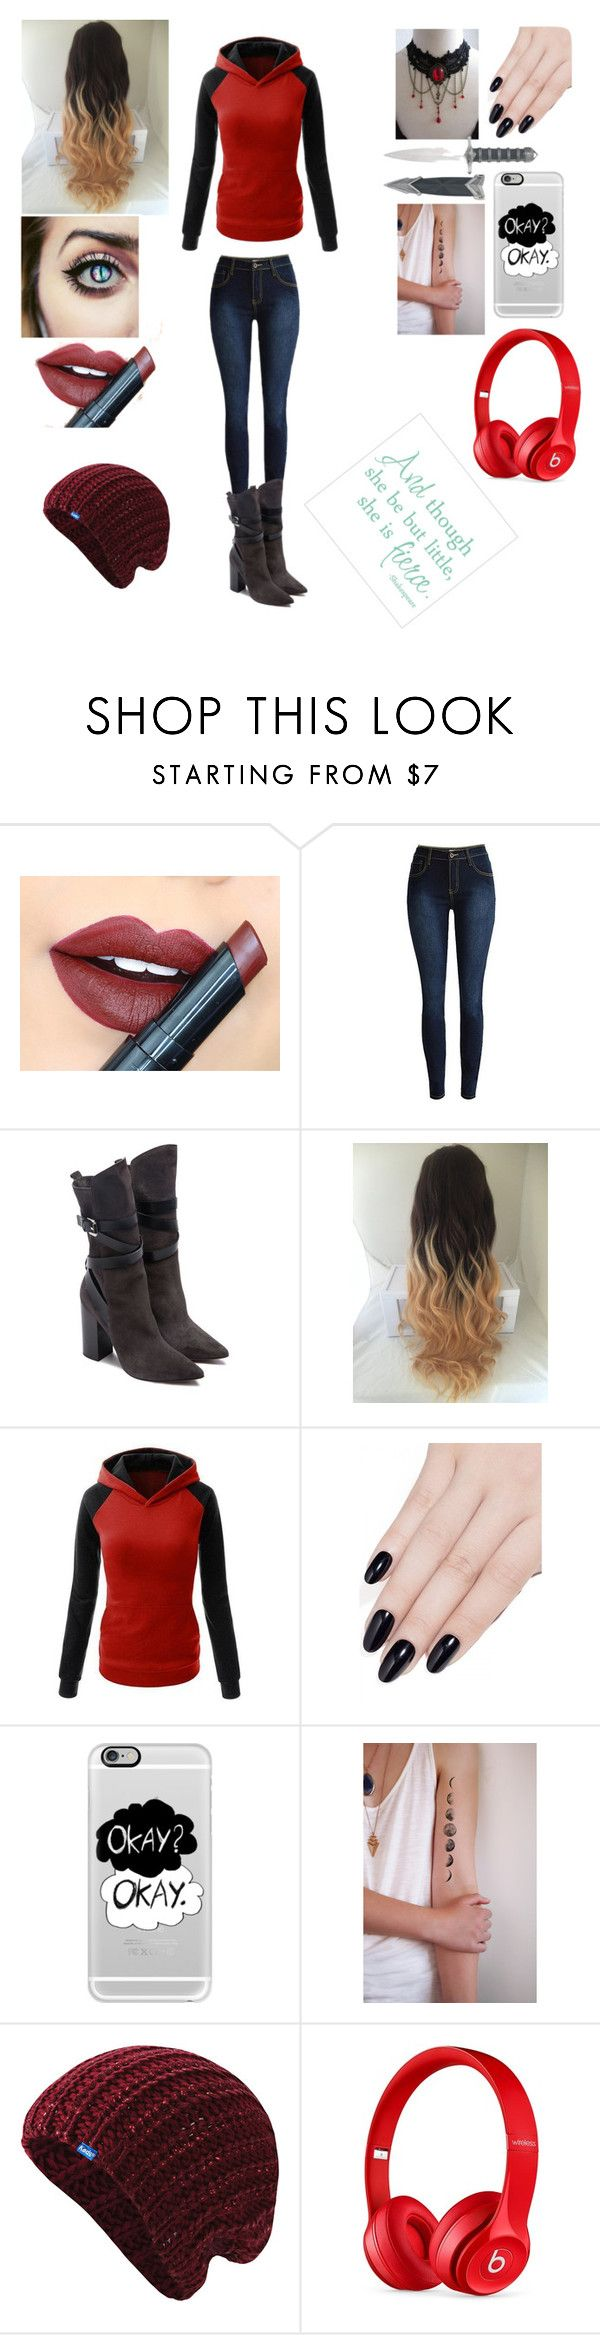 """""""Underfell"""" by frisk-chara ❤ liked on Polyvore featuring Fiebiger, COSTUME NATIONAL, ncLA, Casetify, Keds and Beats by Dr. Dre"""